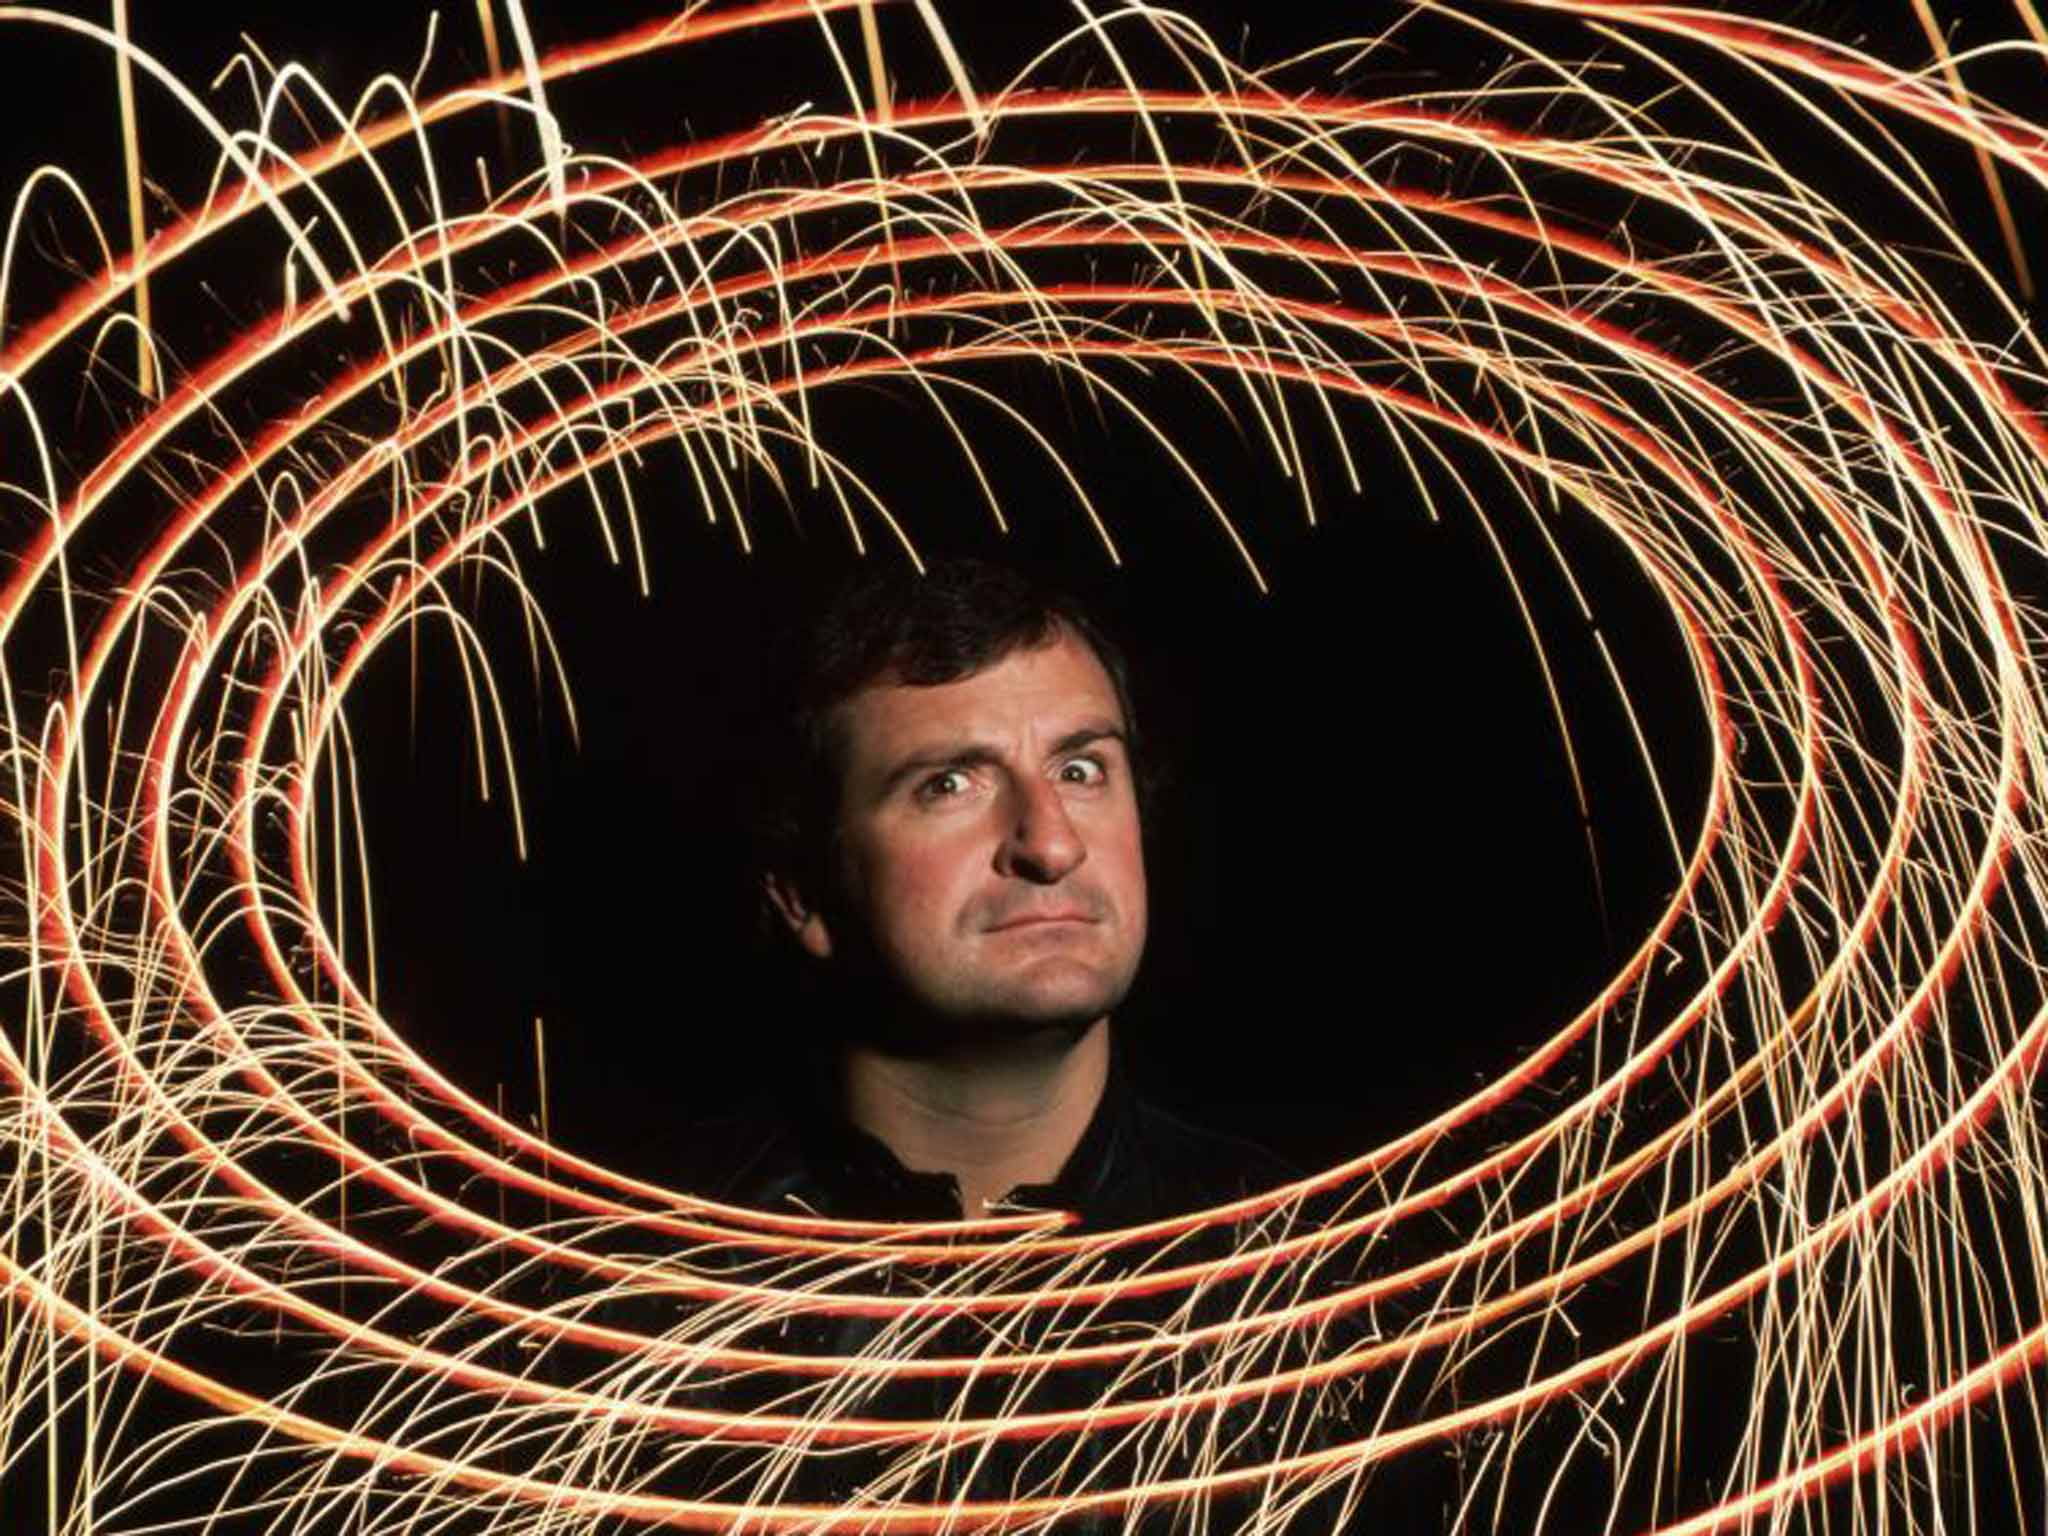 Douglas Adams: How a new biography sheds light on his genius - Features - Books - The Independent